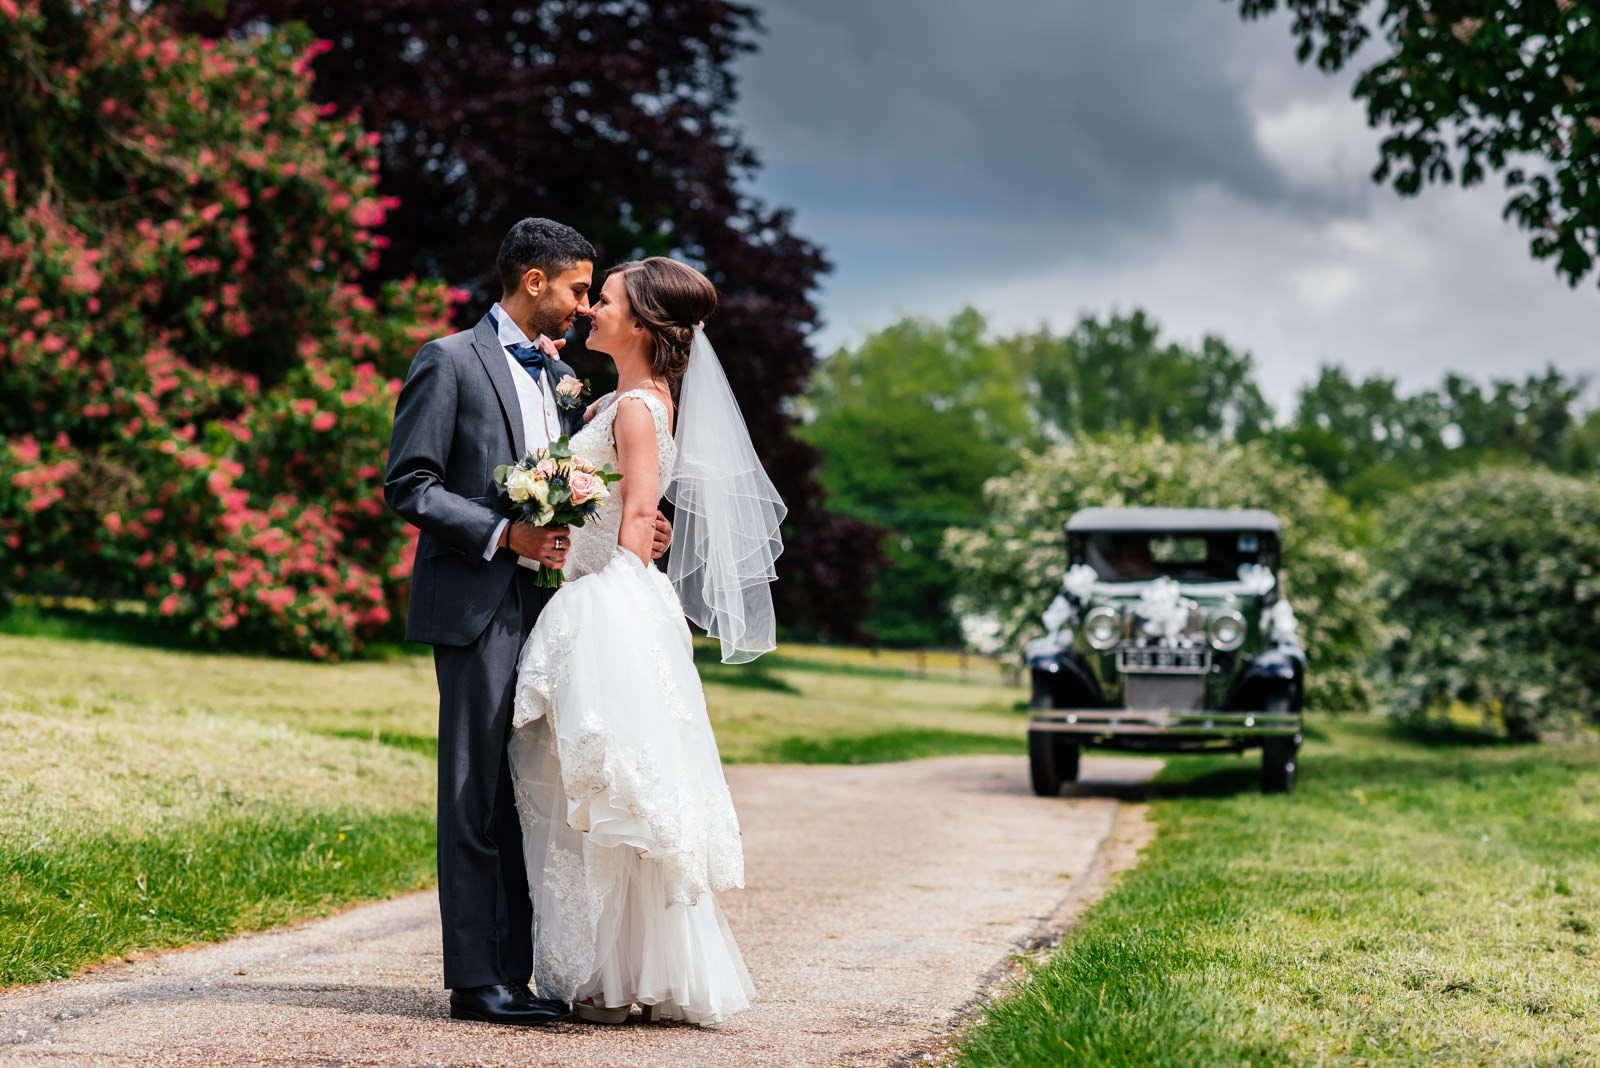 Bride and groom portrait with vintage car